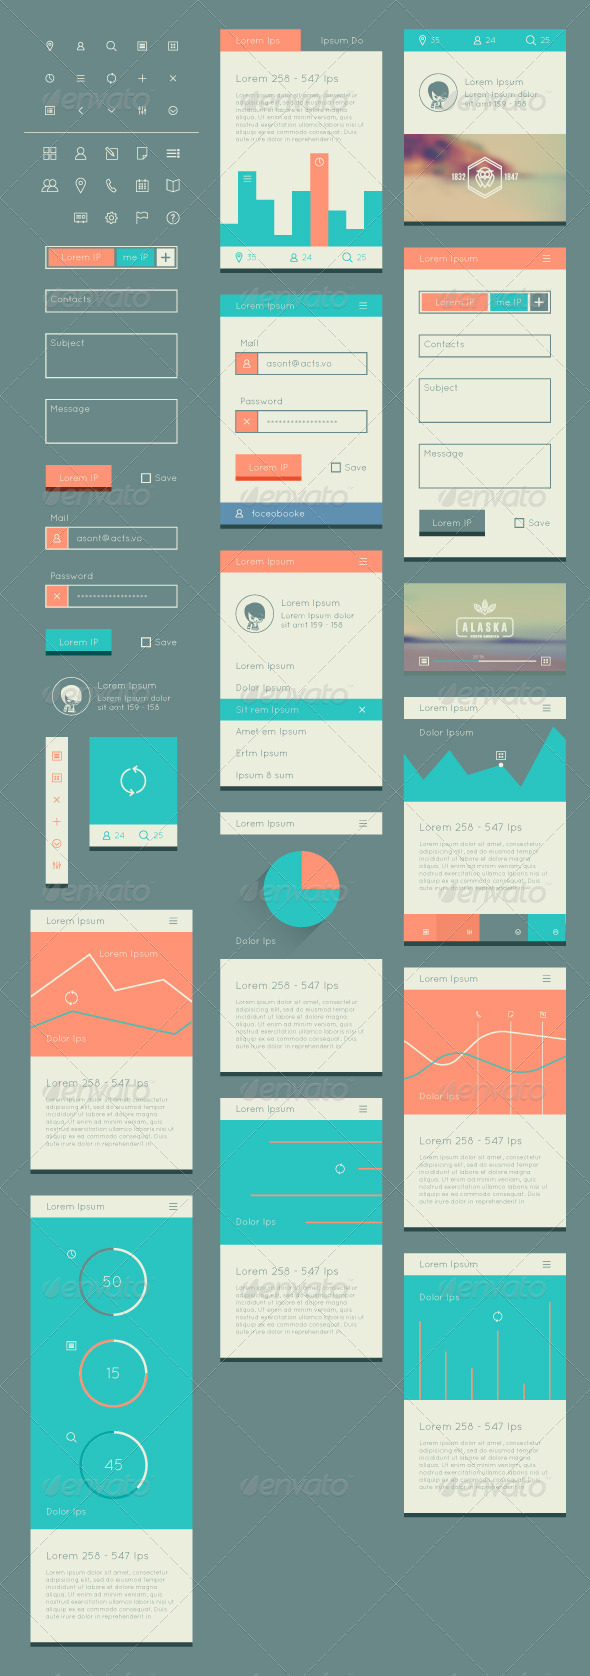 GraphicRiver Flat UI Kit for Web and Mobile 8184160